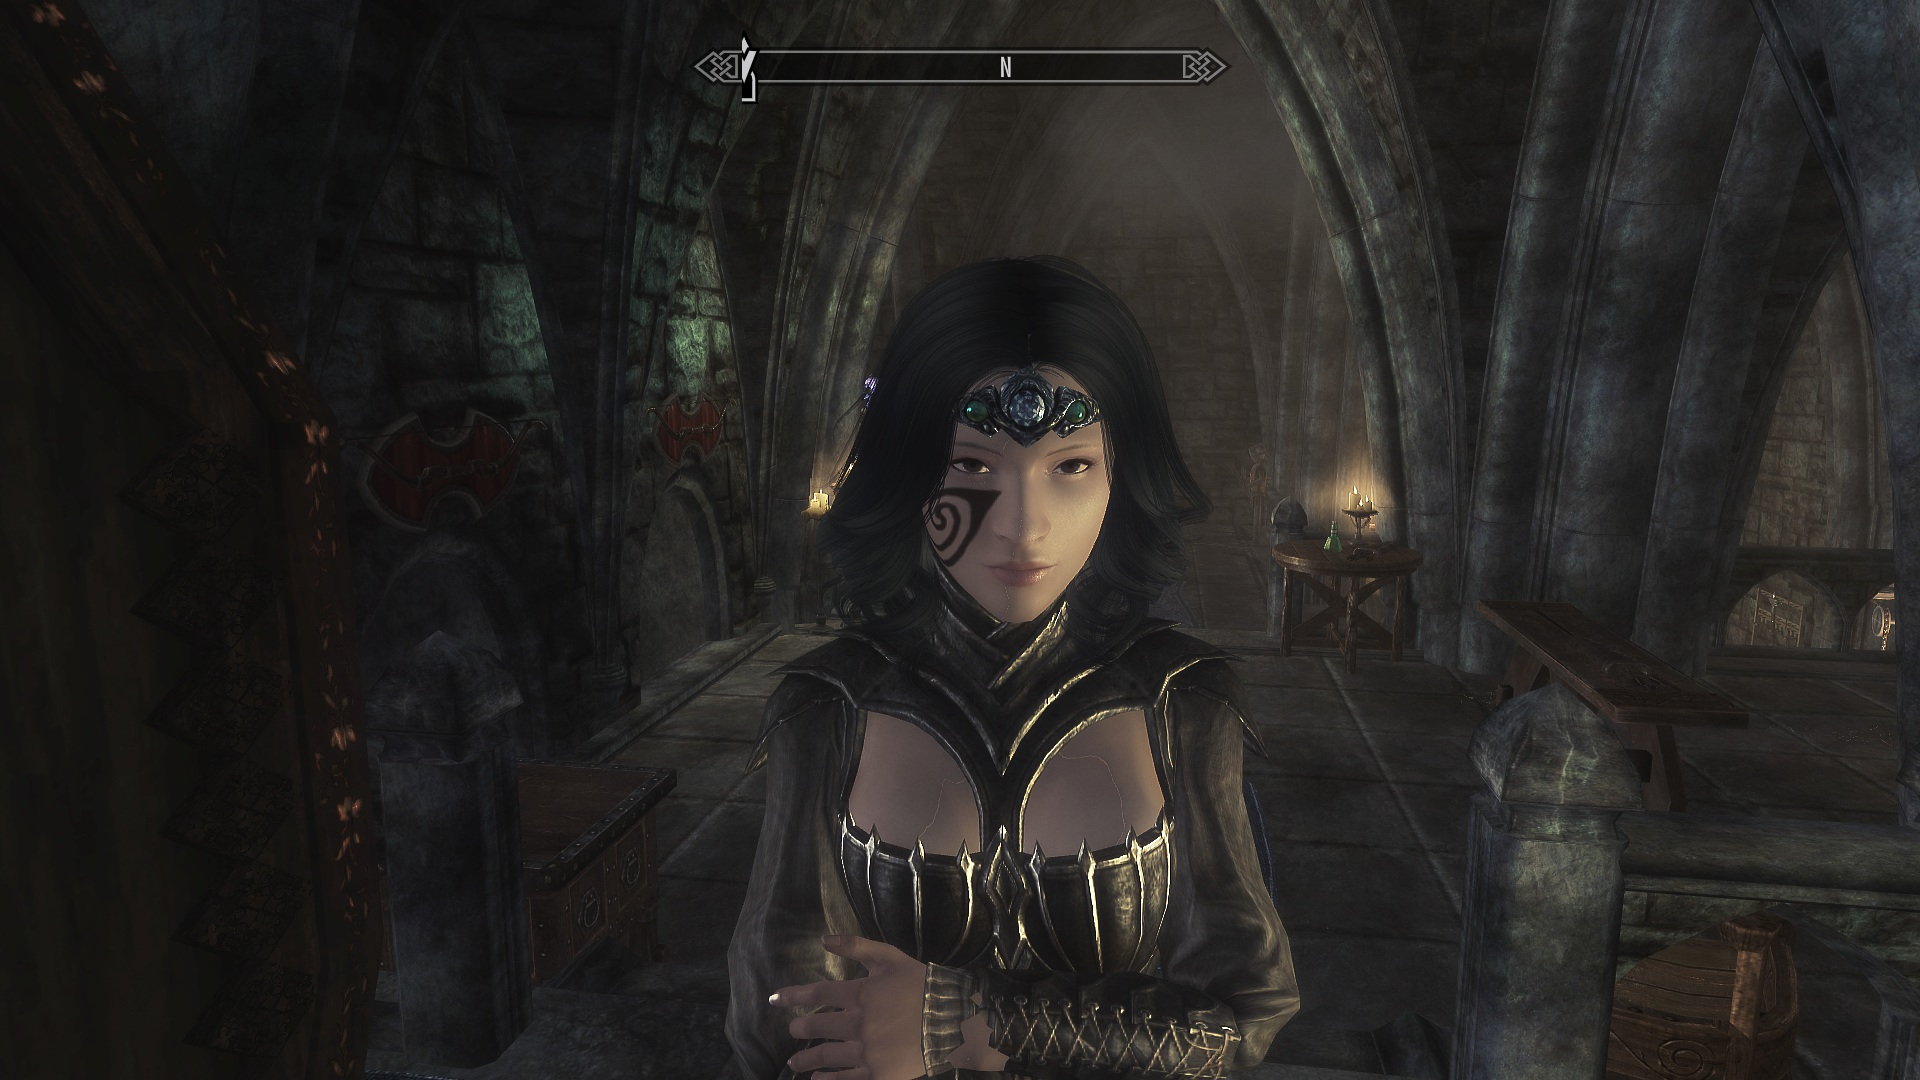 Dawnguard vampires retain your appearance at skyrim nexus mods view image uploaded at 127 21 aug 2012 voltagebd